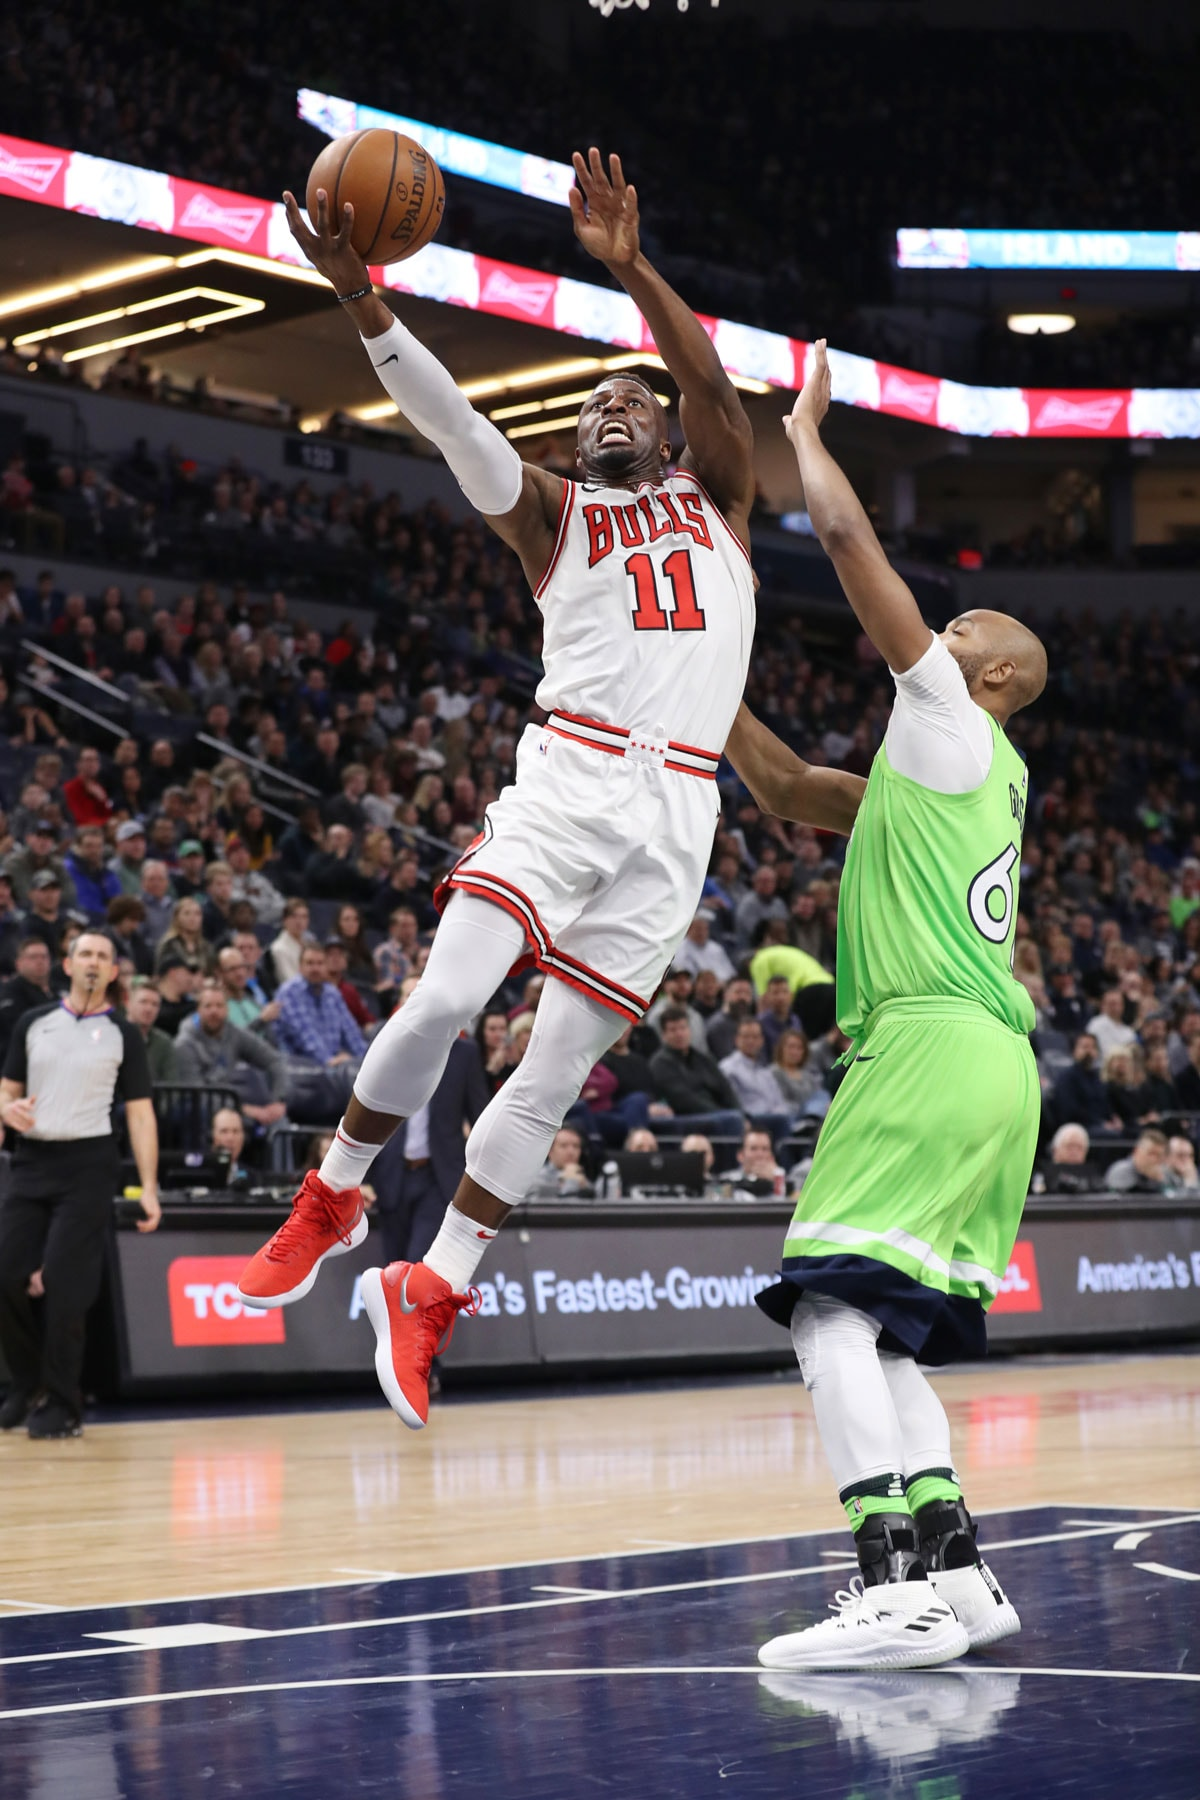 David Nwaba #11 of the Chicago Bulls shoots the ball during the game against the Minnesota Timberwolves